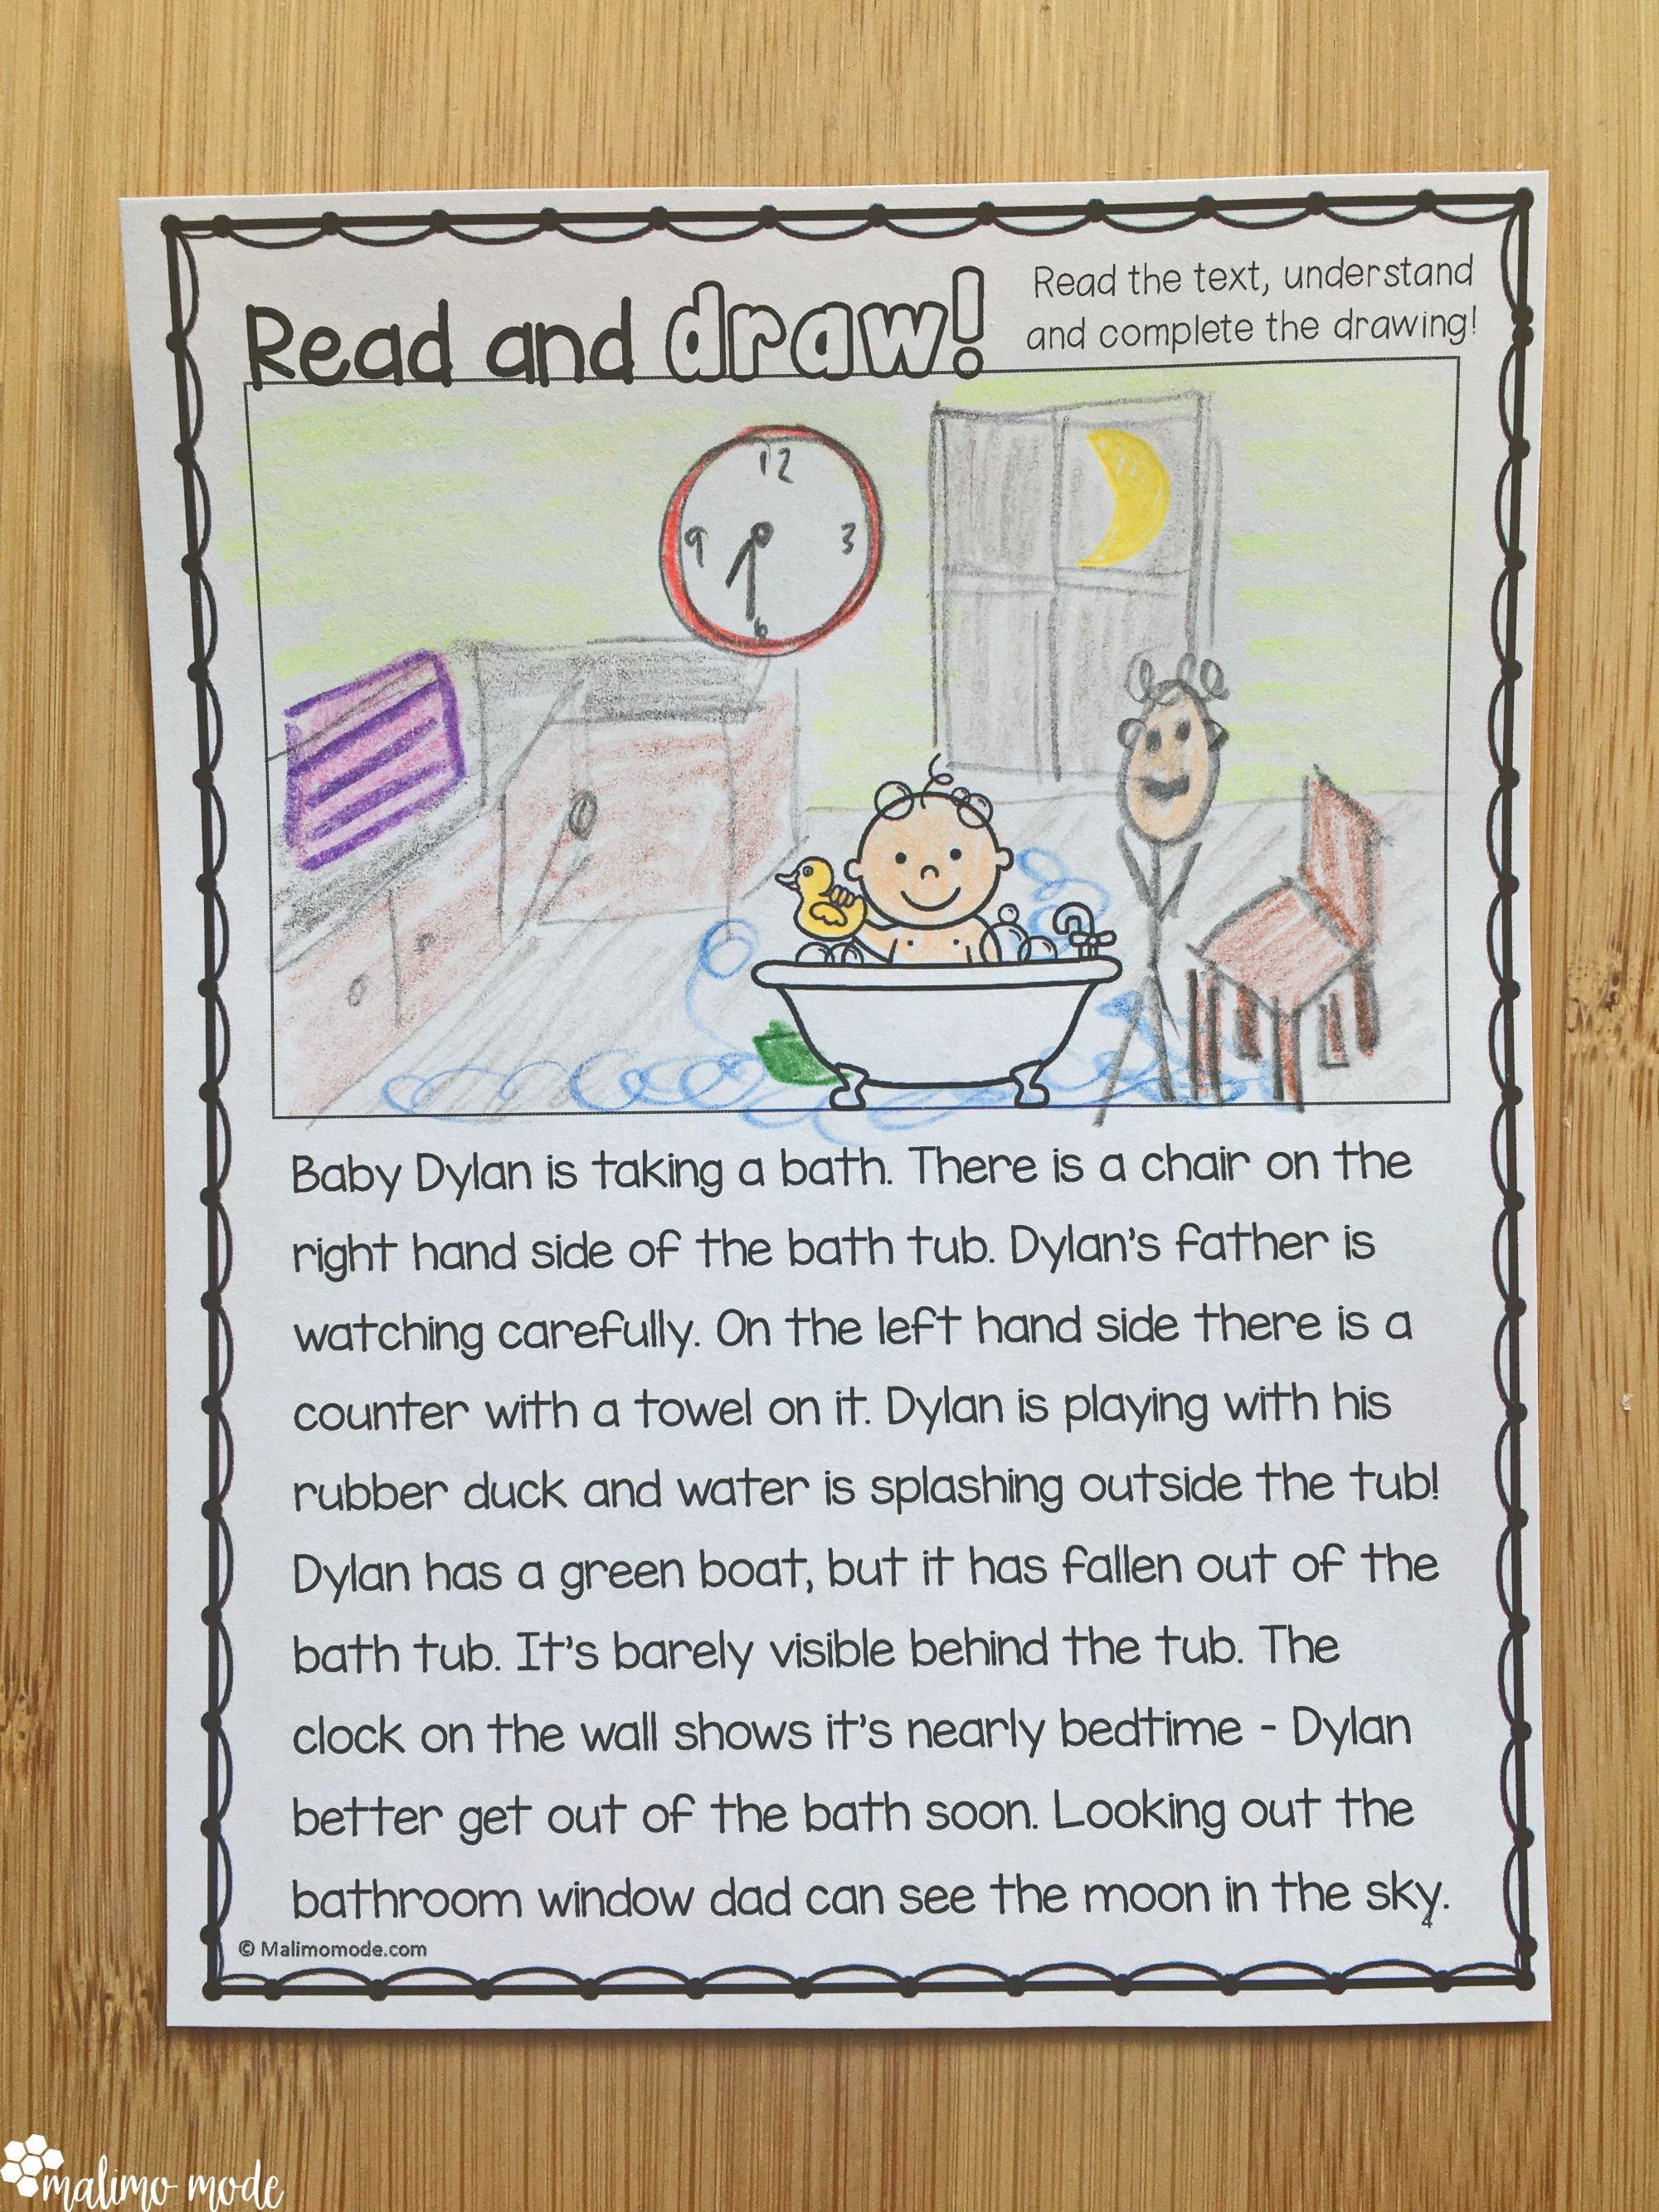 Drawing Based On Reading Comprehension 2